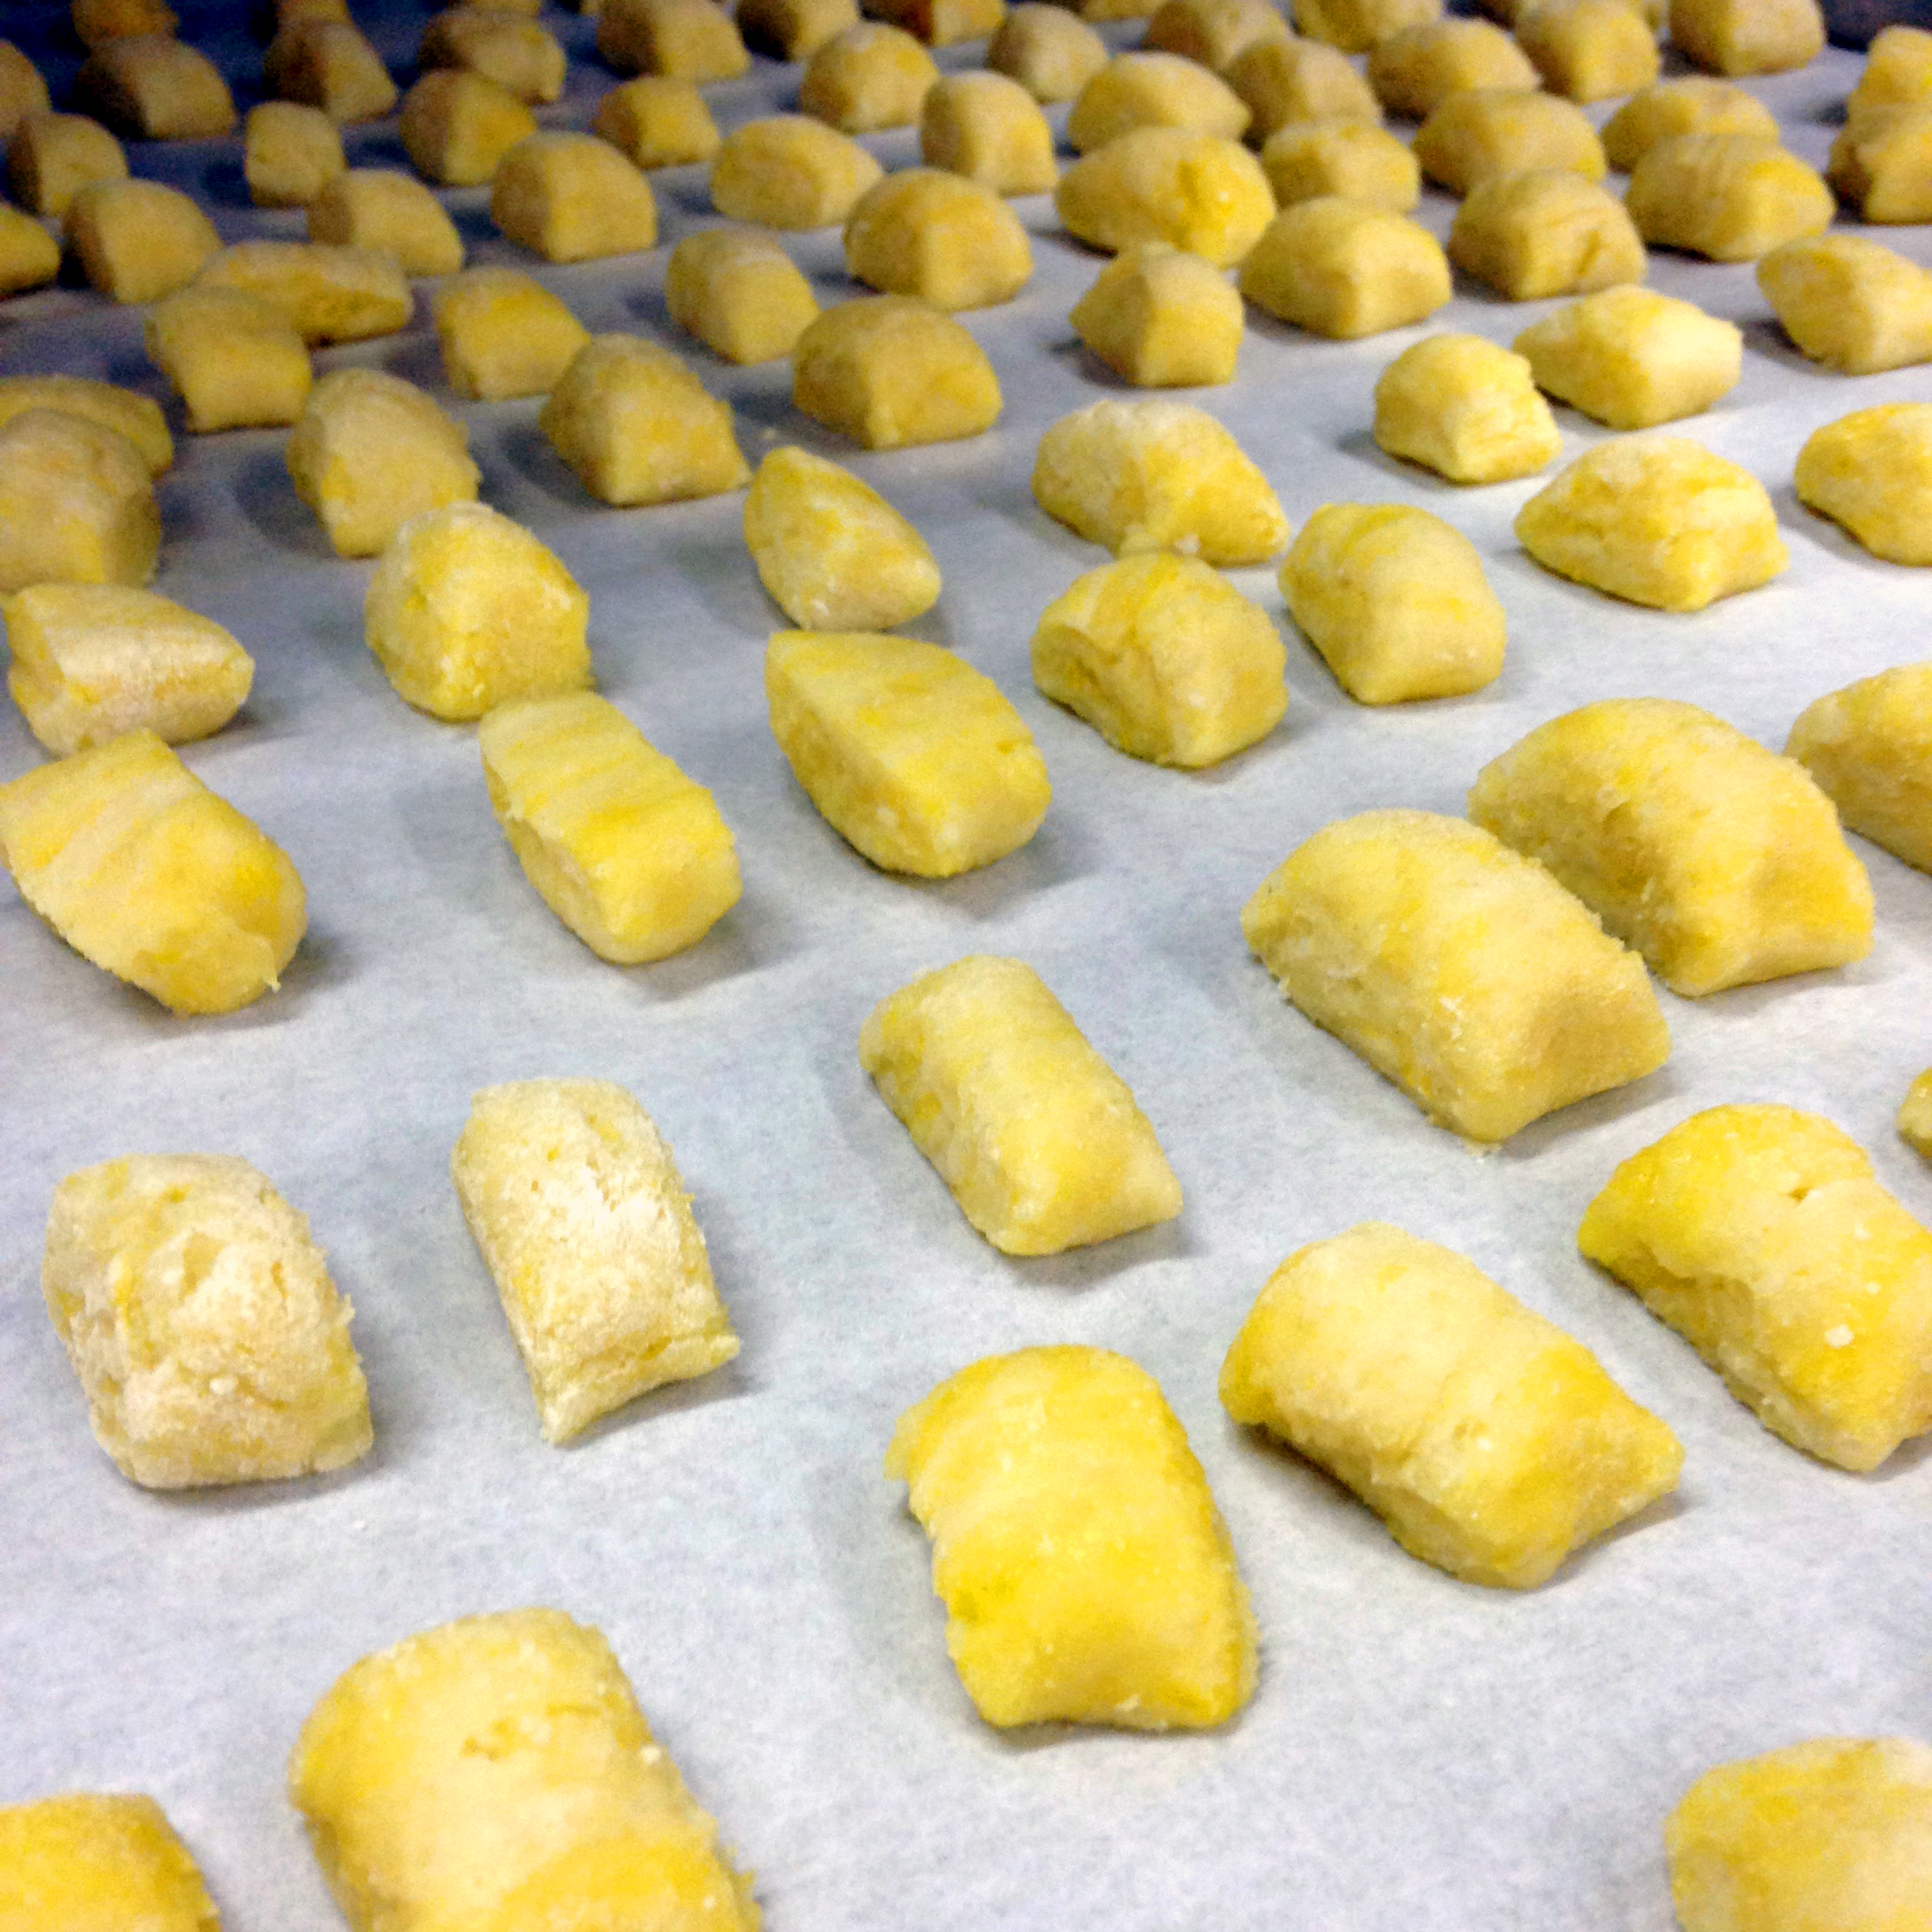 Gnocchi, take 2. This time I ensured there would be no sticking together!